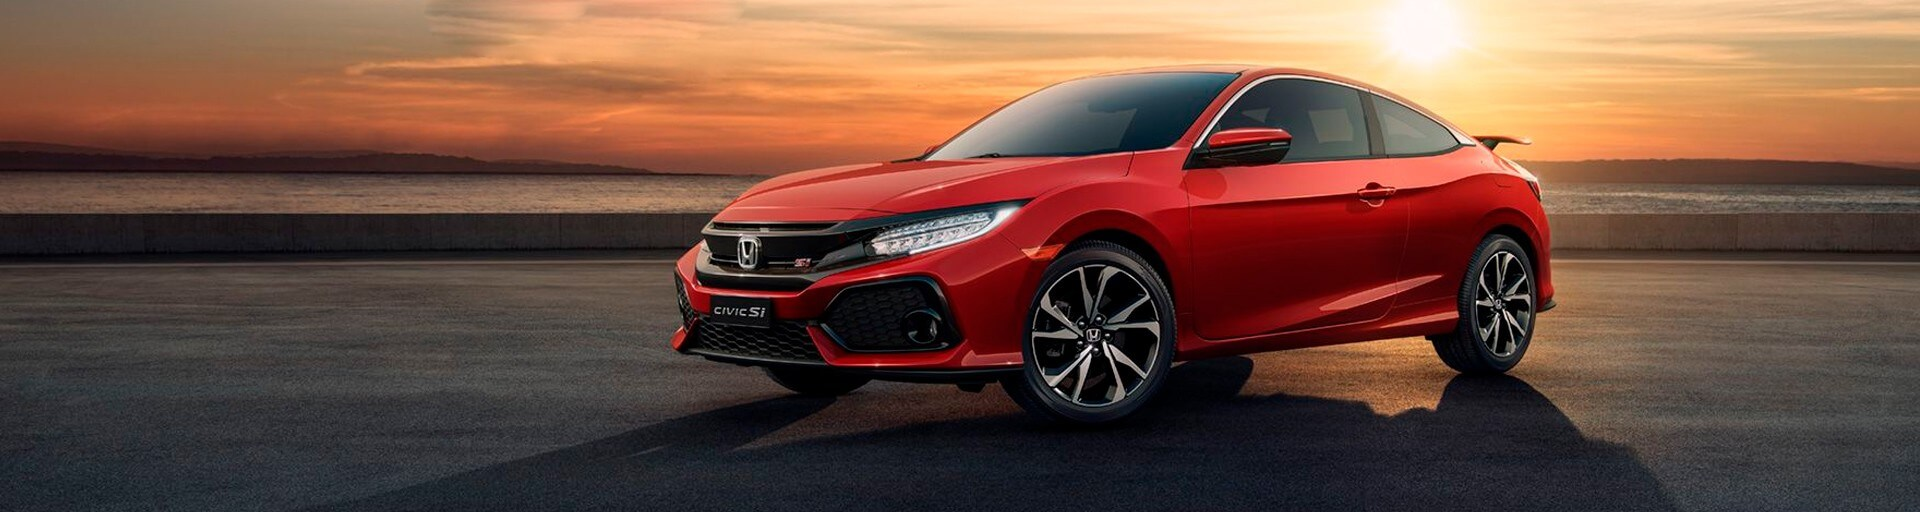 carro-honda-civic-si